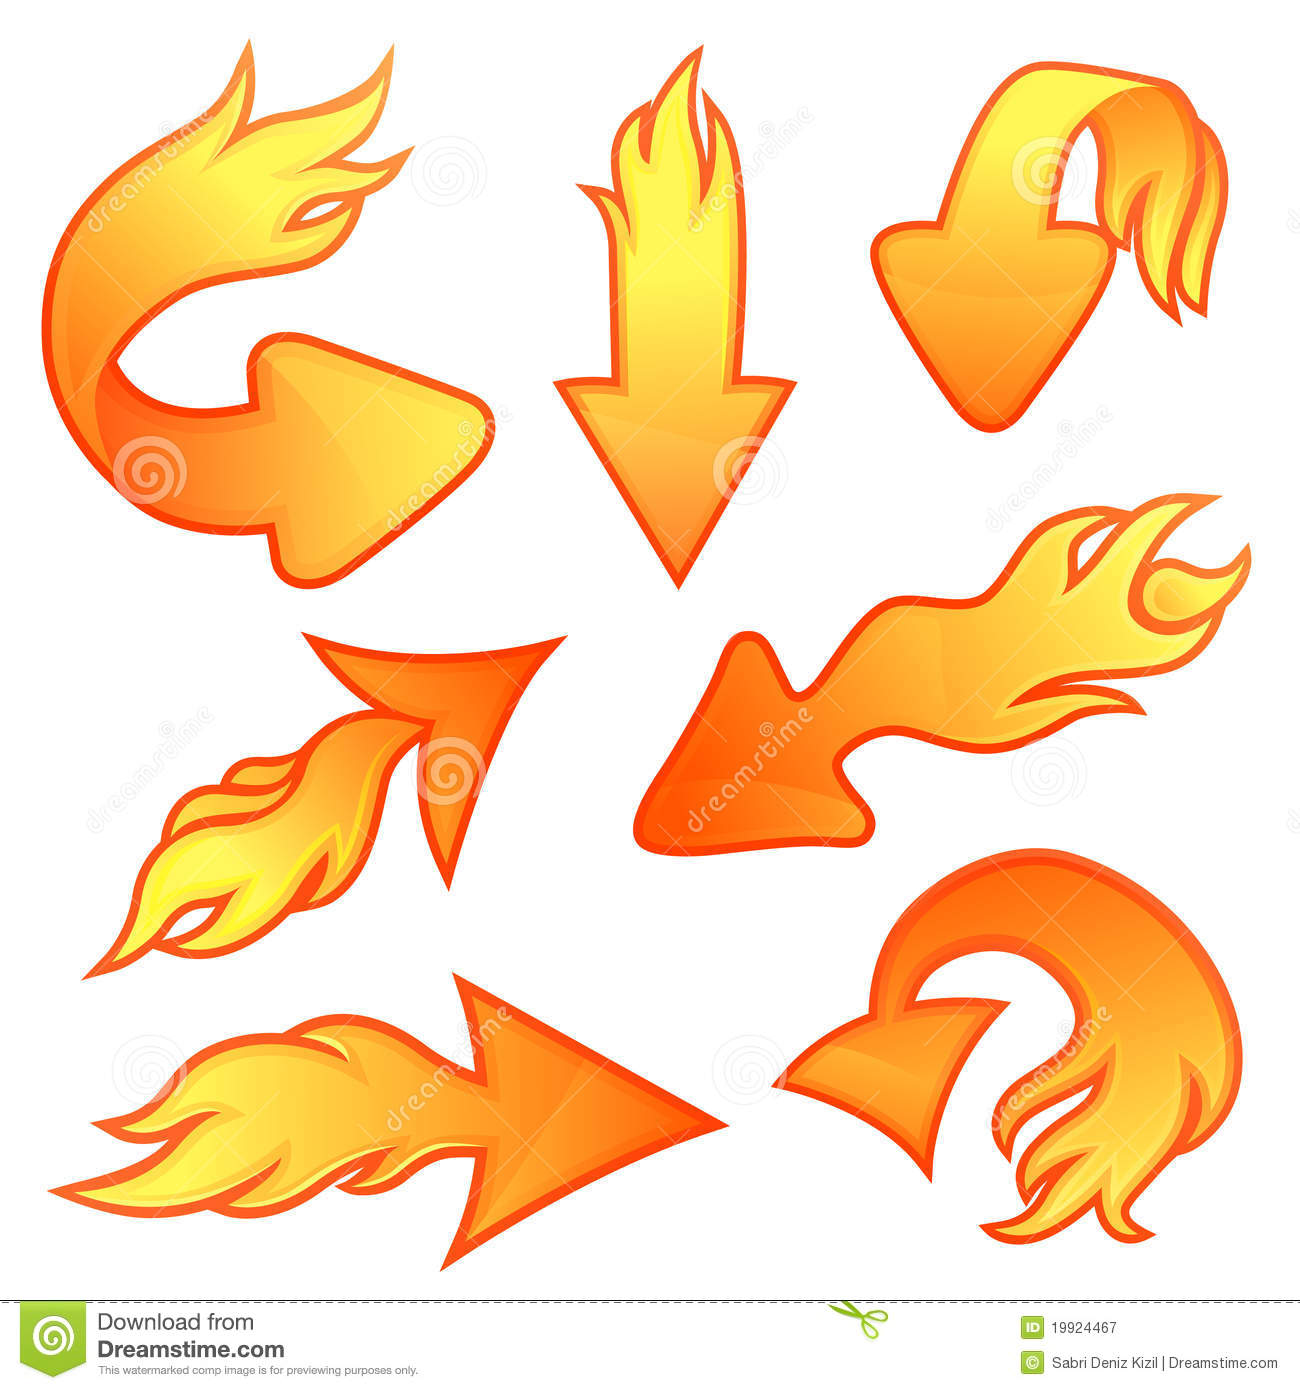 Fire arrows stock vector. Illustration of fire, flame ...